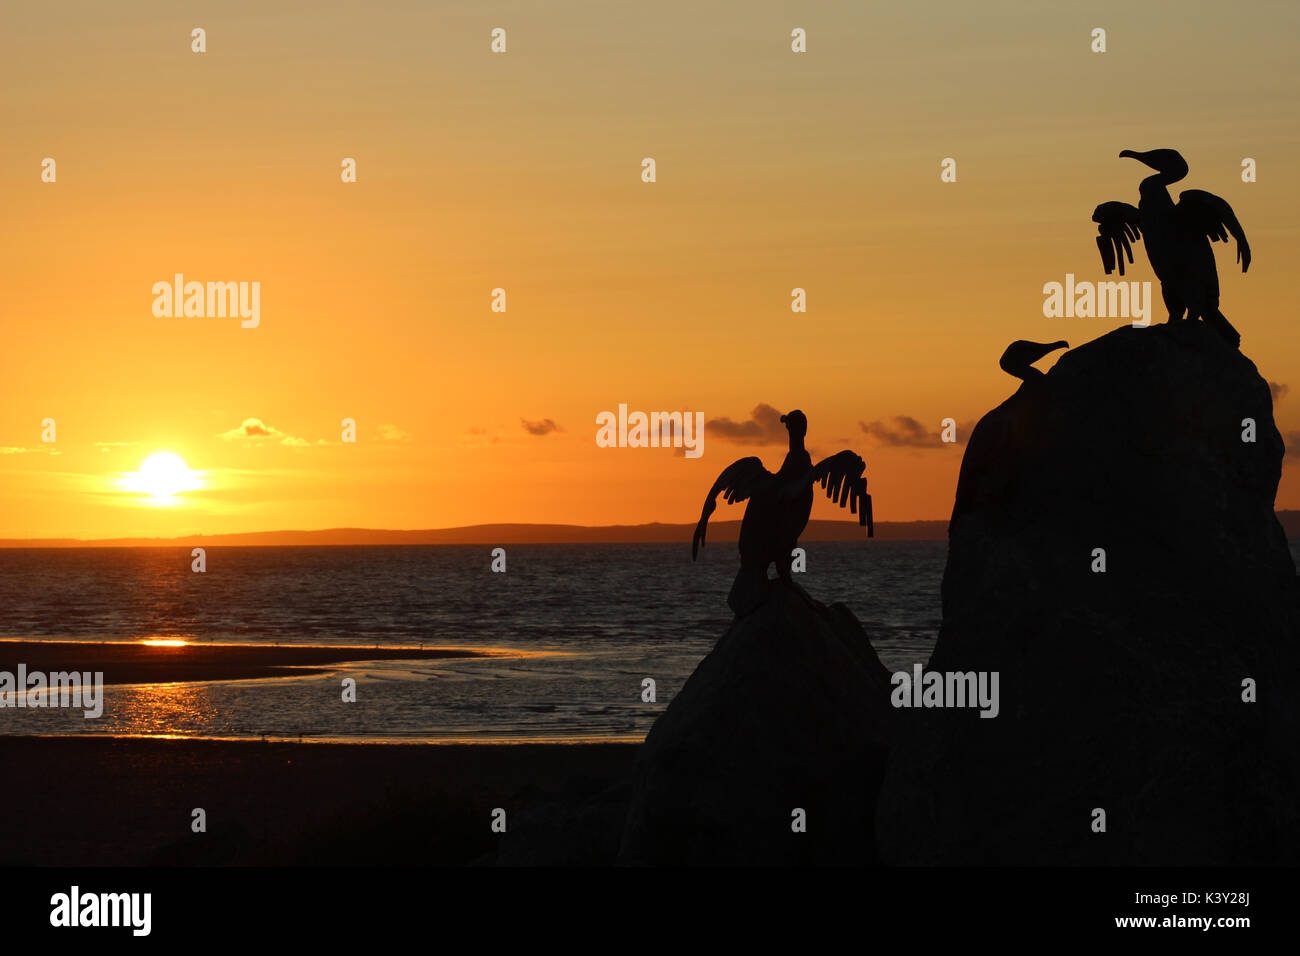 Sunset over Morecambe Bay from the Stone Jetty in Morecambe, Lancashire, England with silhouettes of sculptures of cormorants in the foreground. - Stock Image